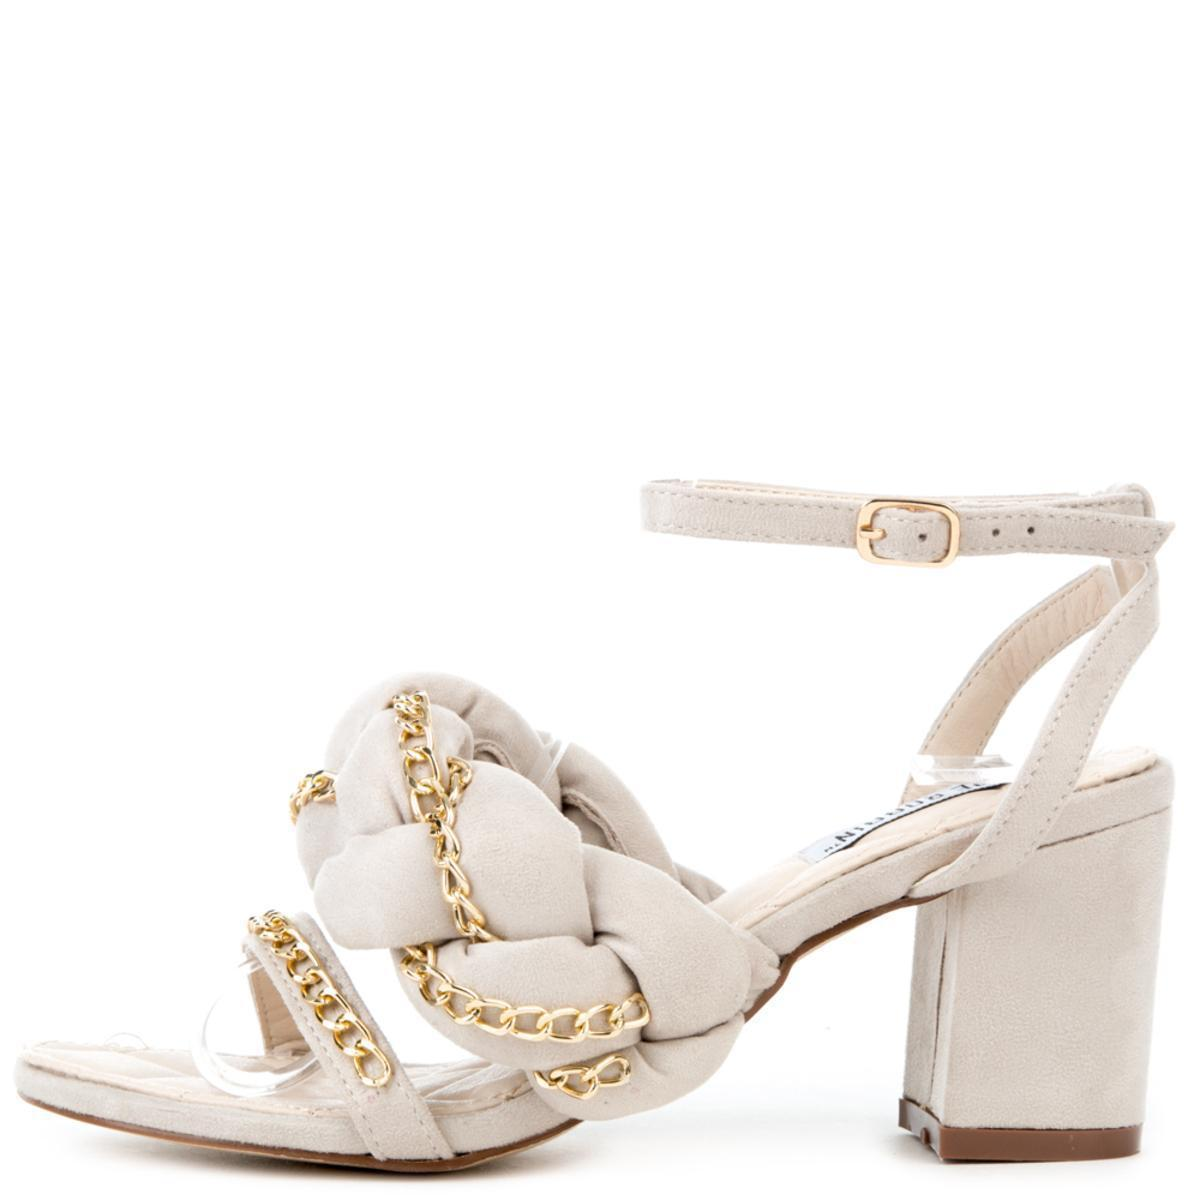 a4fcde70547 Lyst - Cape Robbin Carrie-23 Nude High Heels in Natural